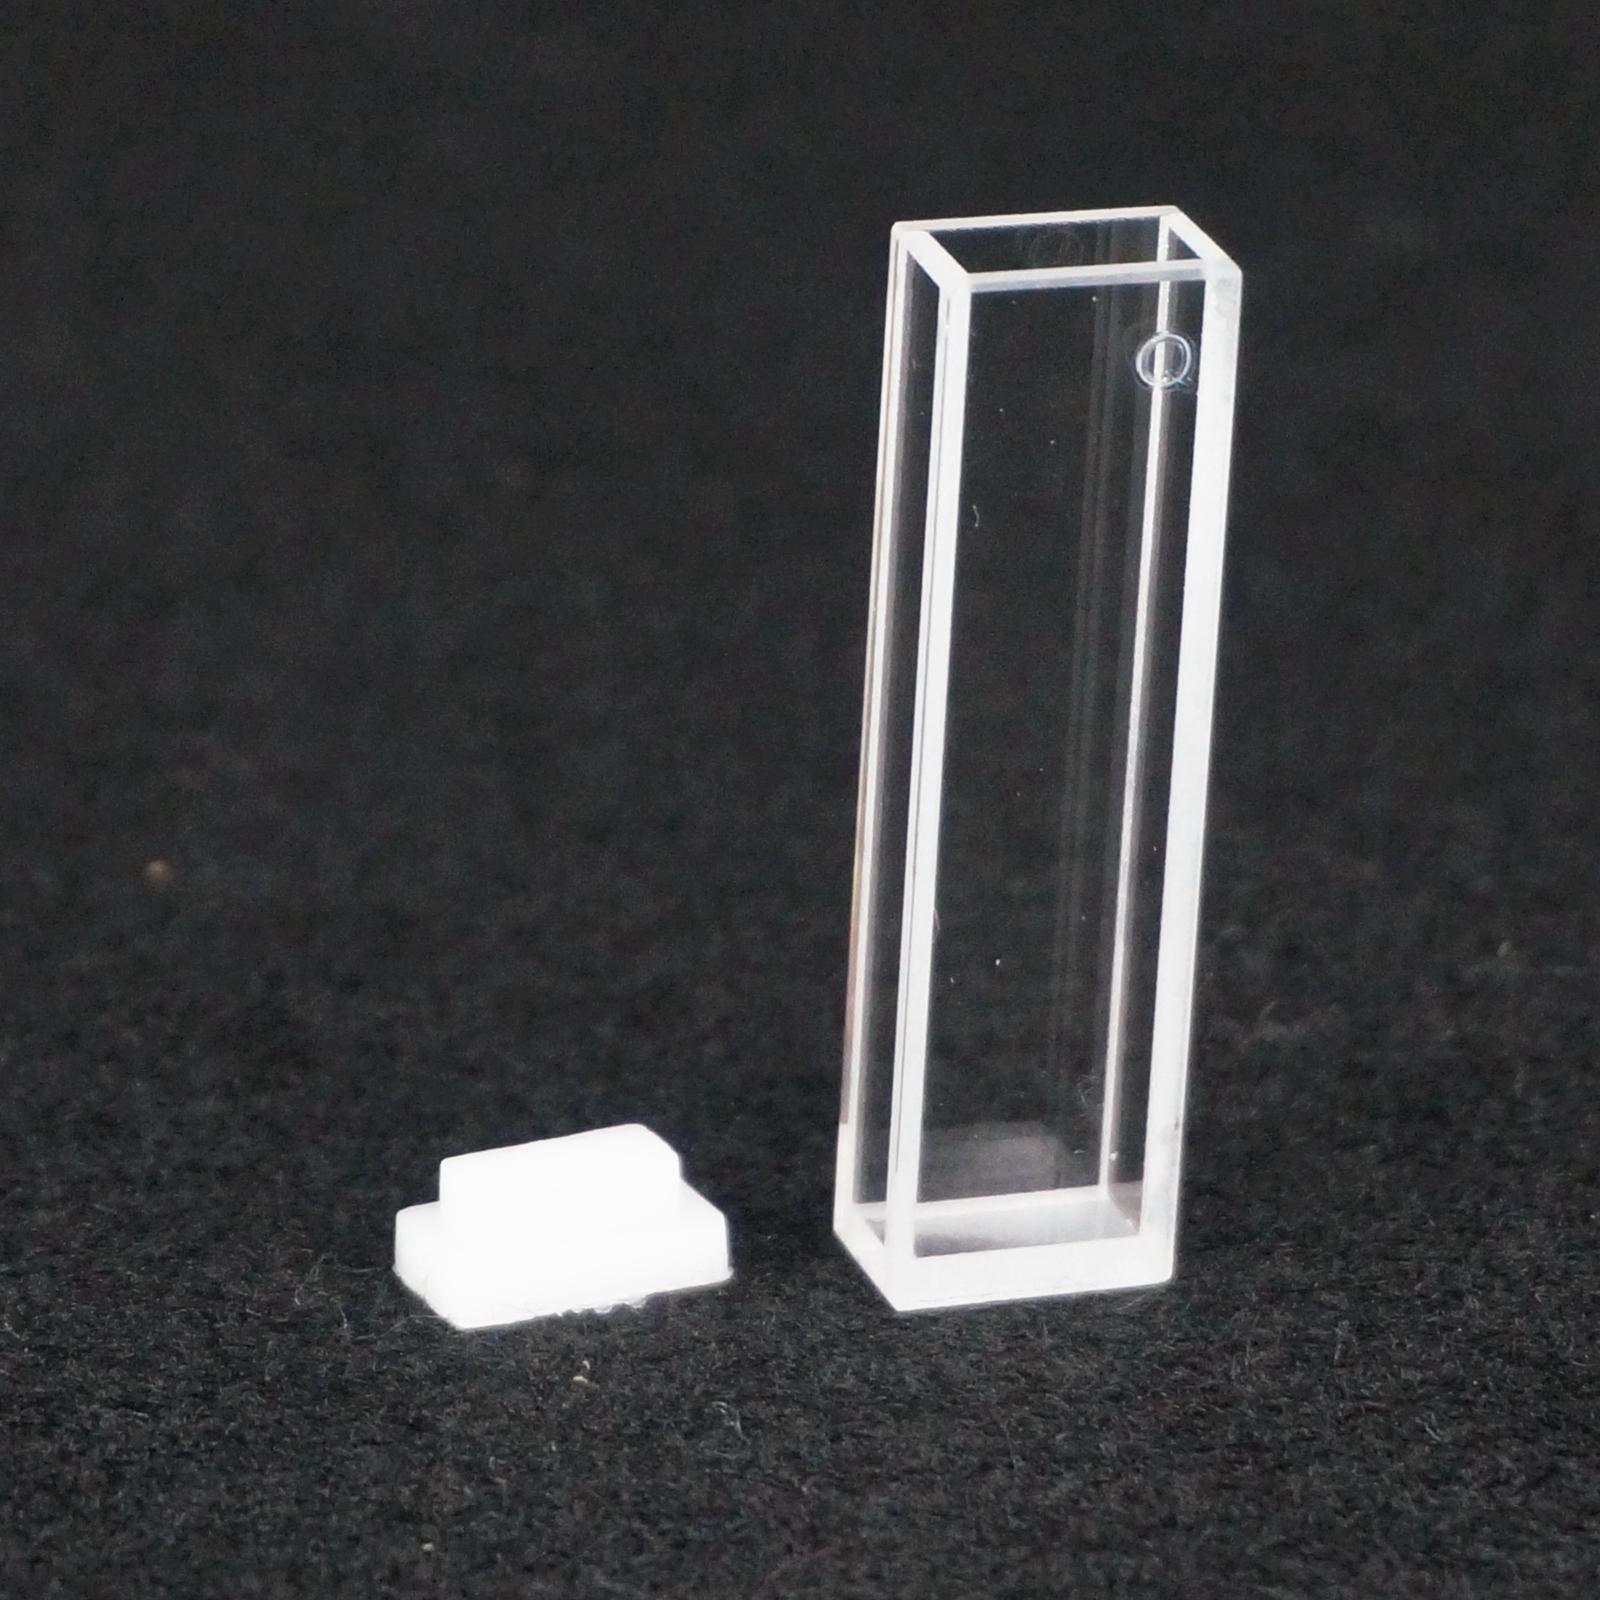 5mm x10mm Path Length JGS1 Quartz Cuvette Cell With Telfon Lid For Fluorescence Spectrometer